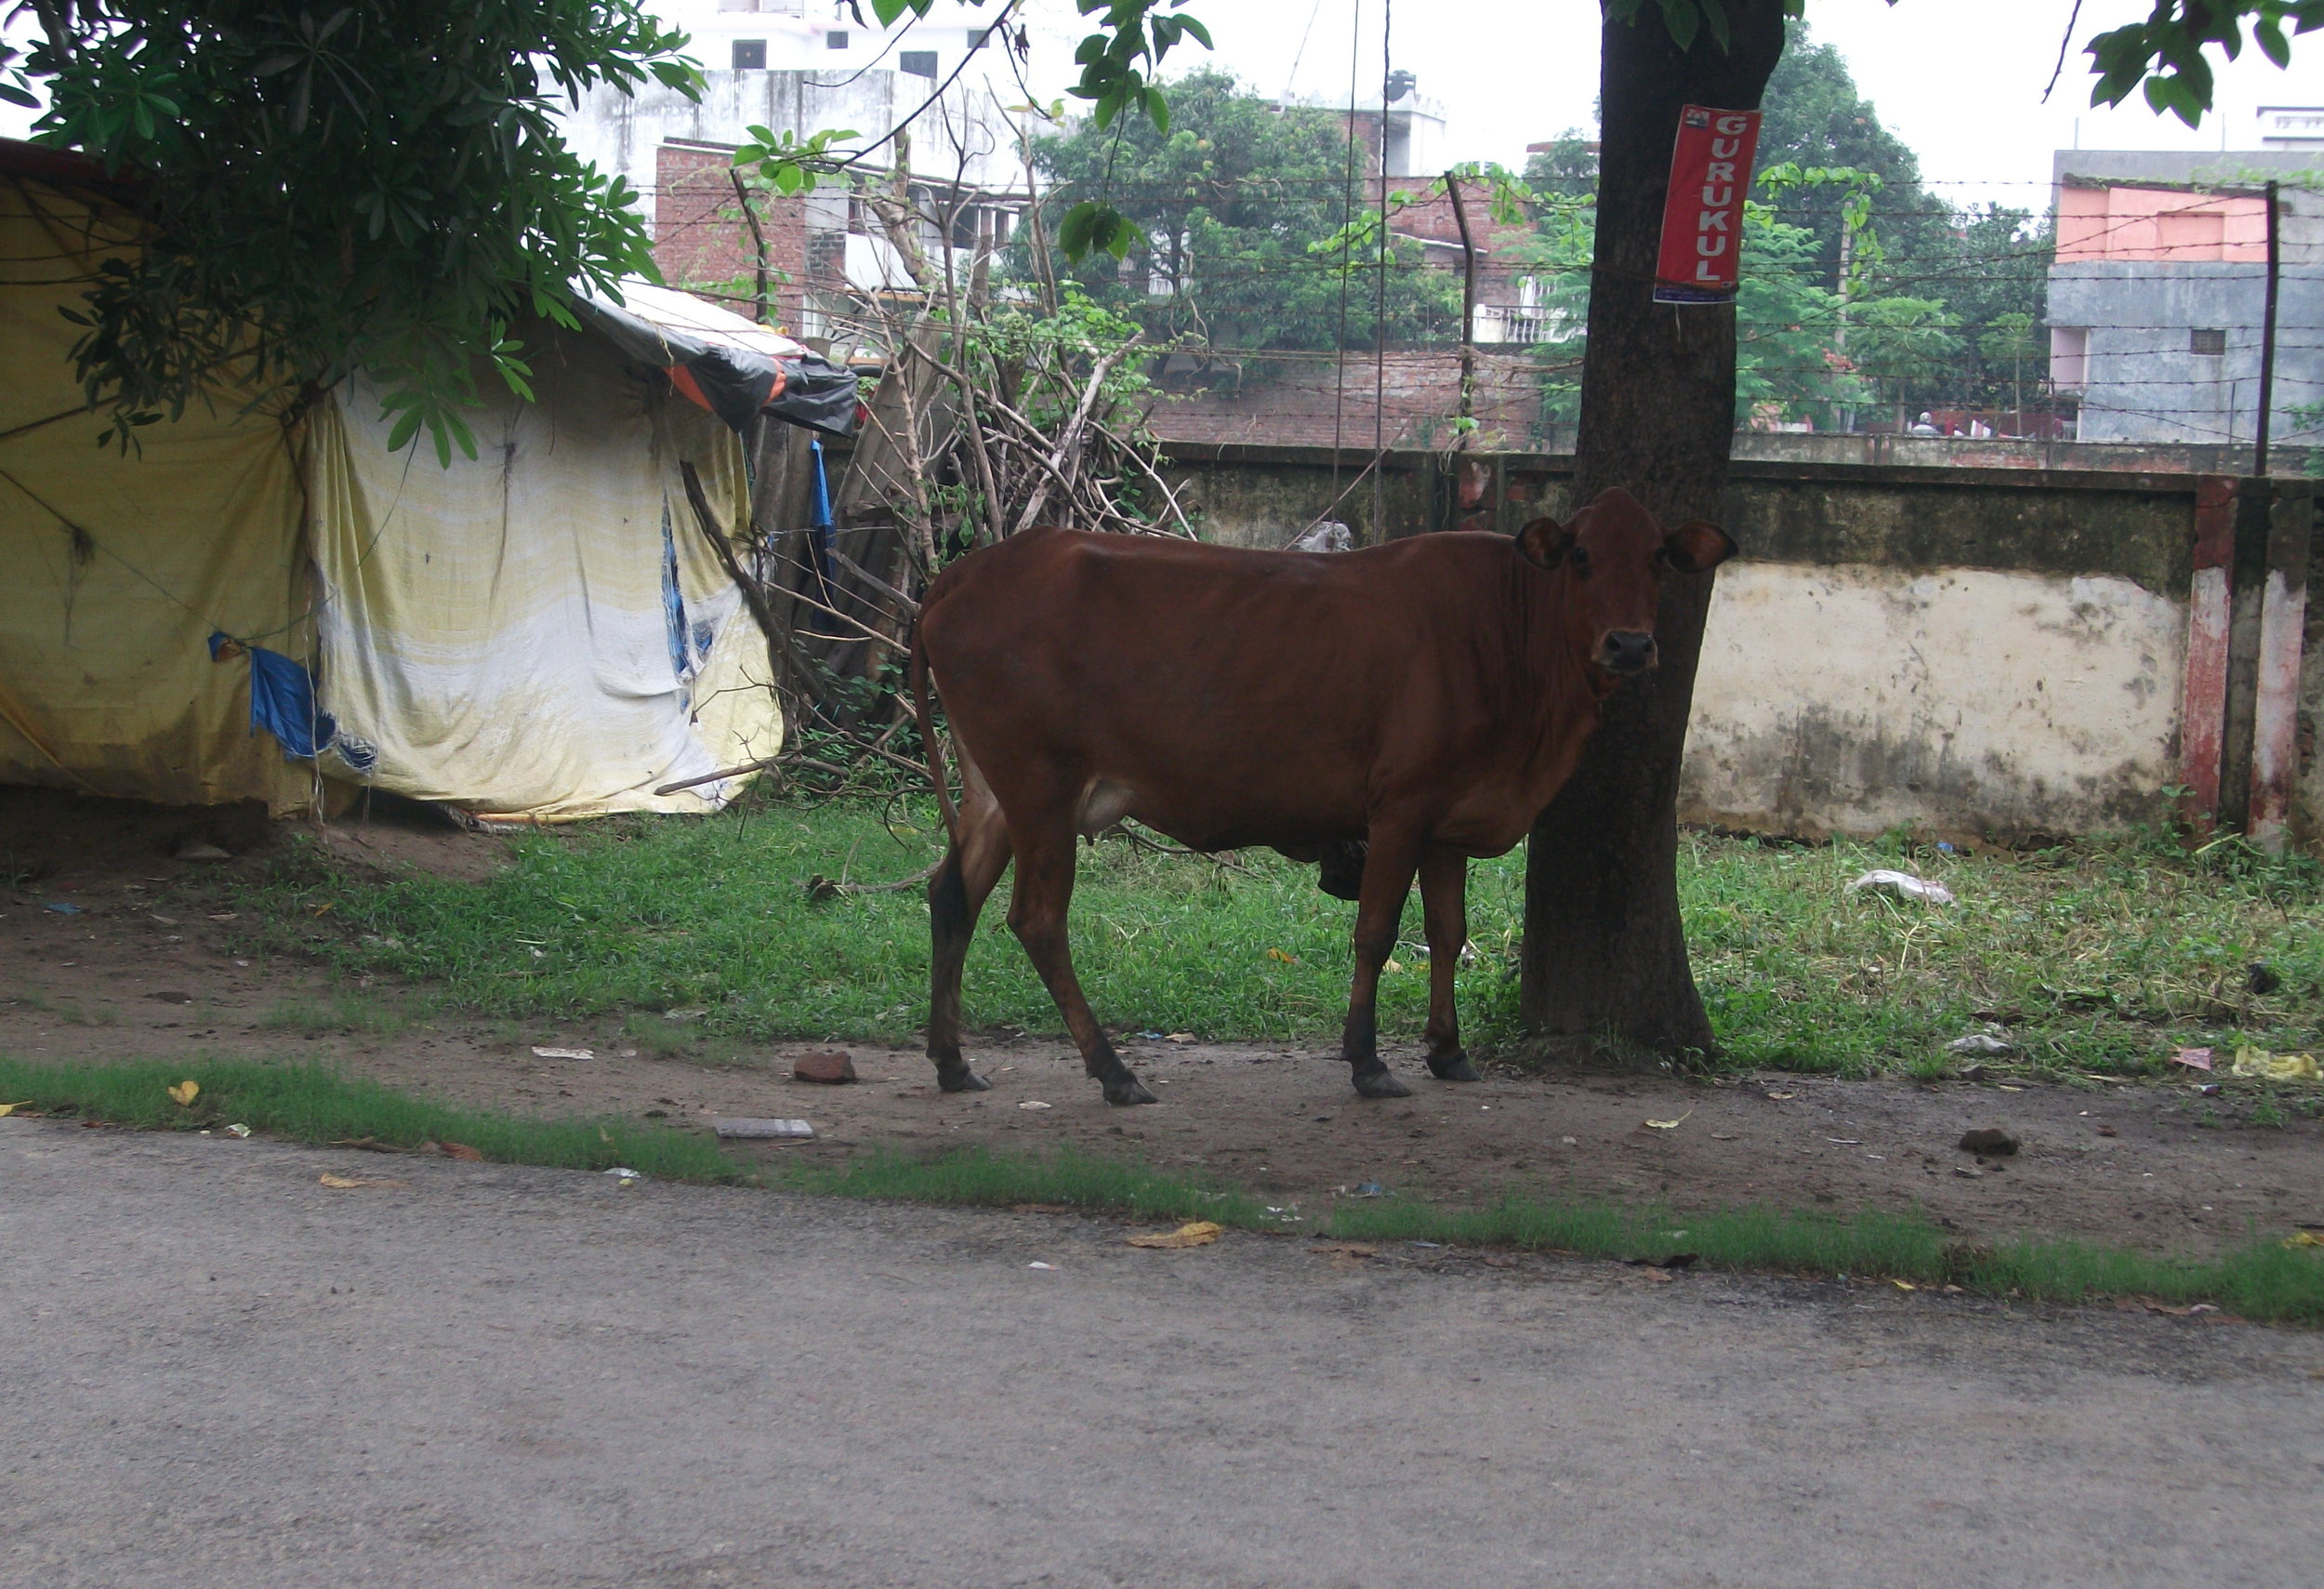 'Unphased'probably describes the cows best - many would sit in the middle of the road with traffic all around them.